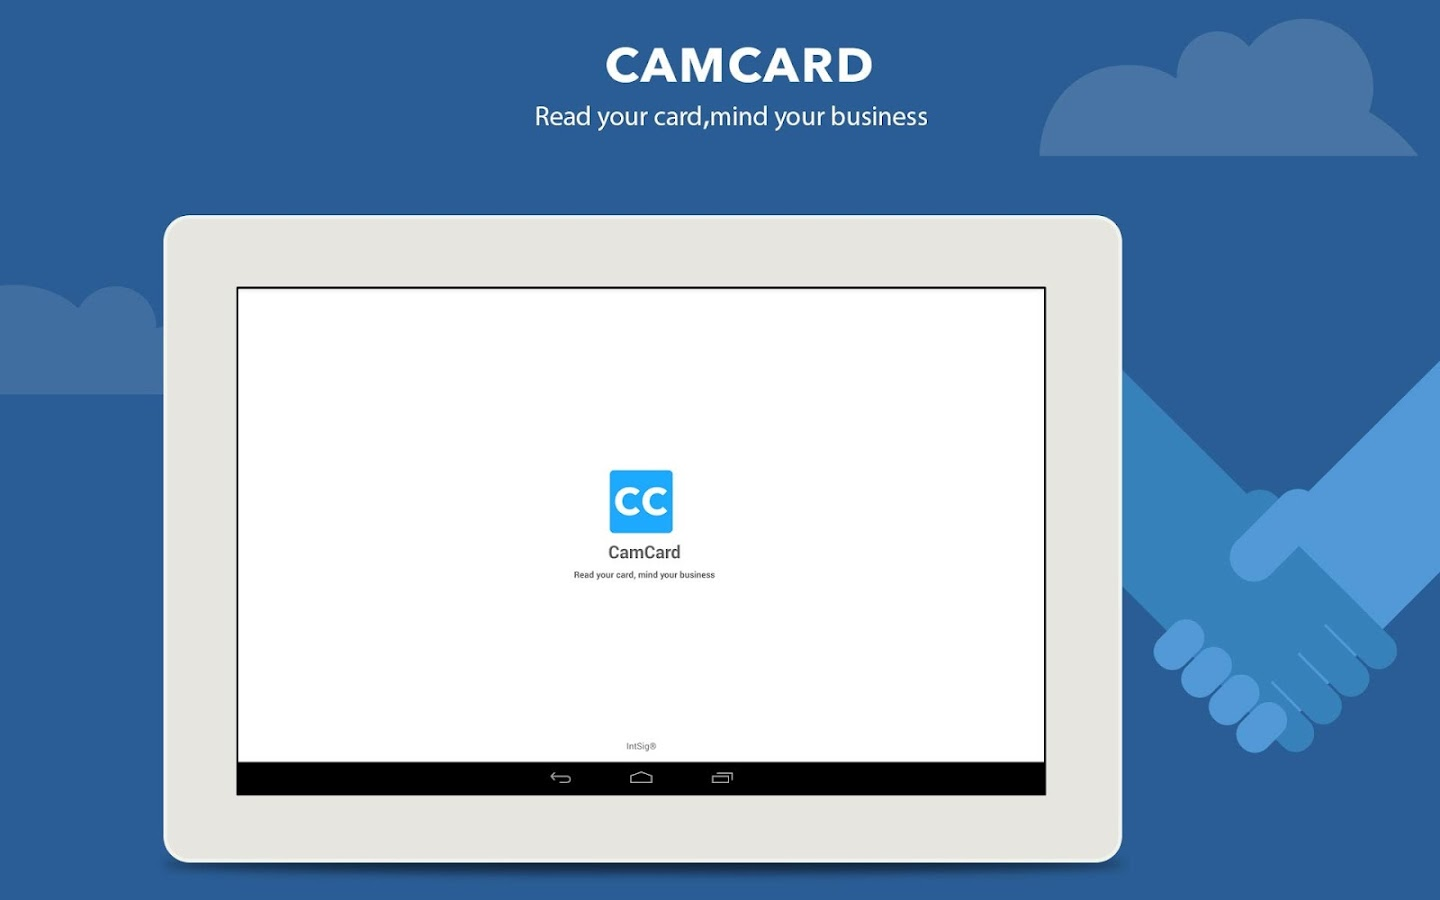 CamCard - Business Card Reader: captura de tela